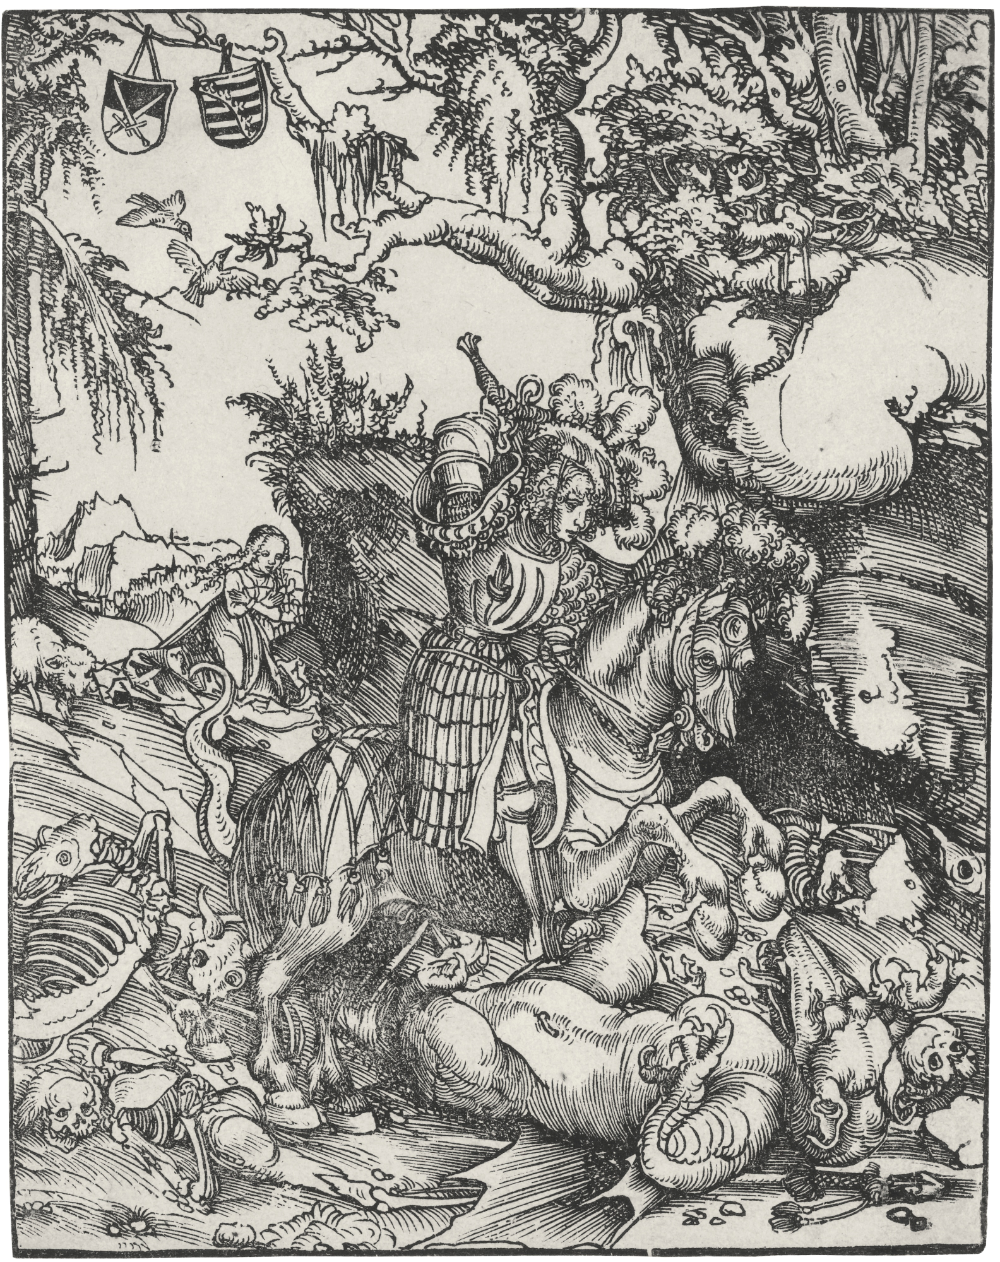 Saint George and the dragon, 1512, Lucas Cranach the Elder, Germany